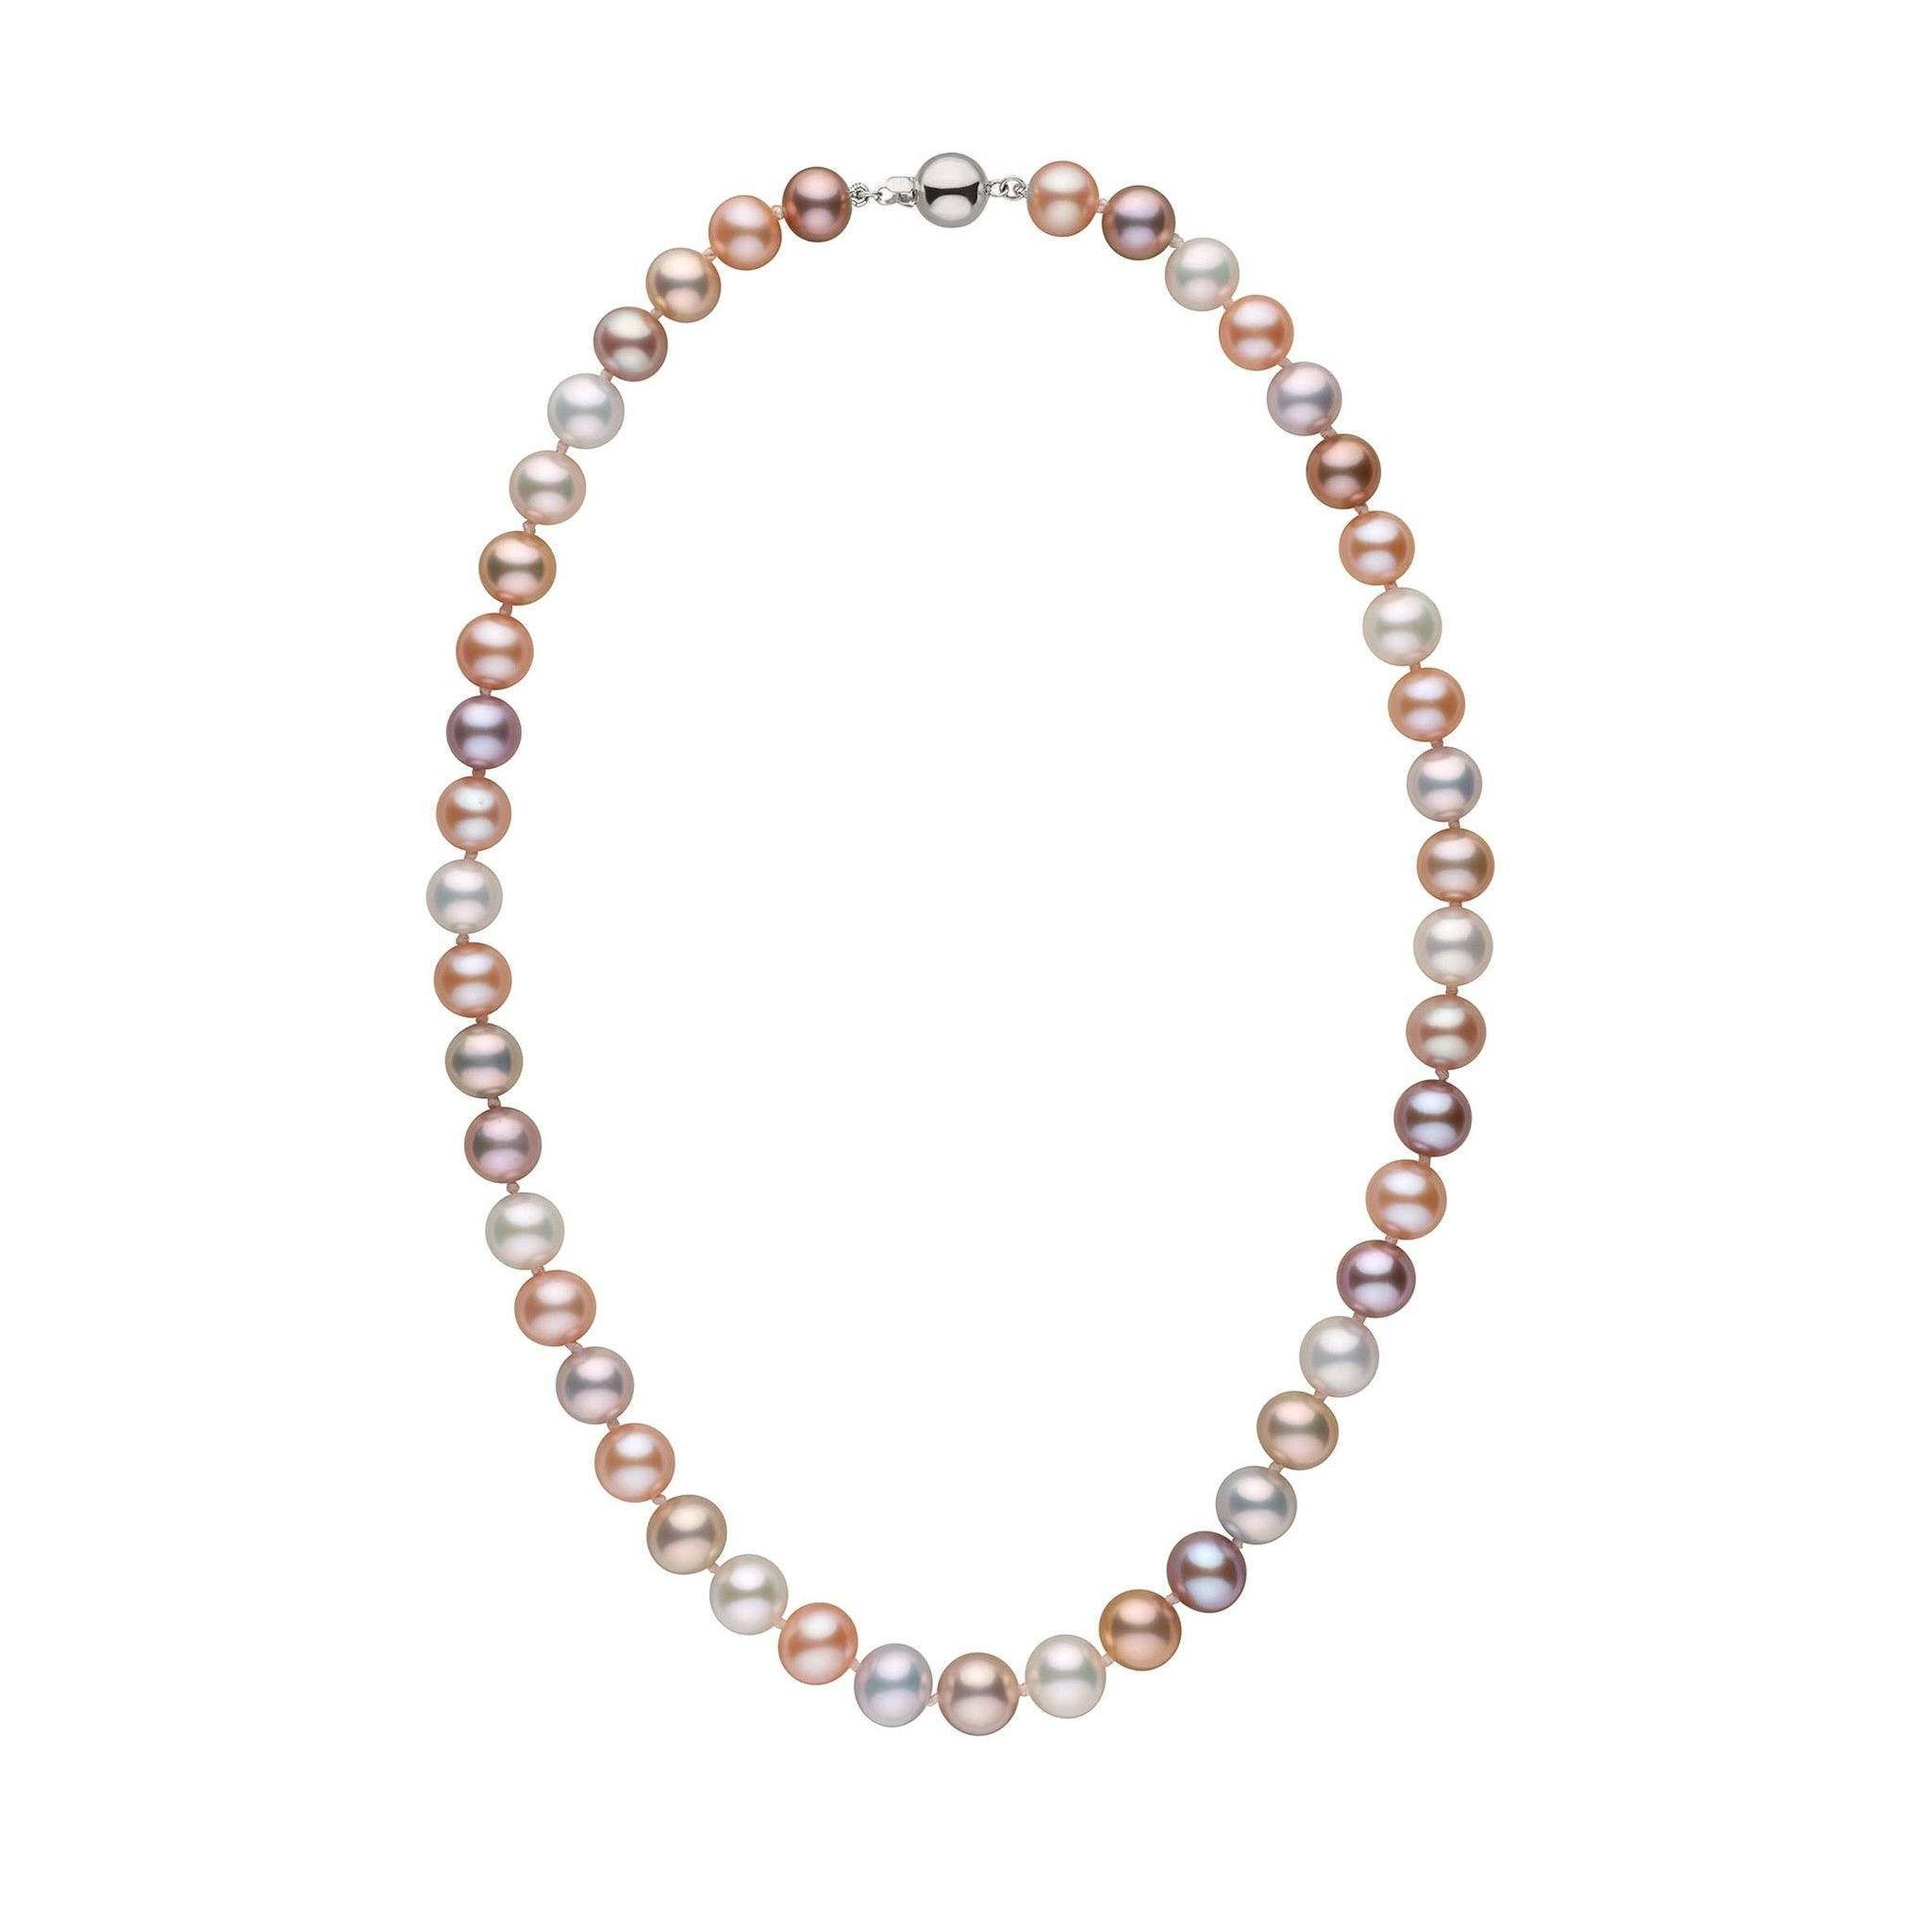 9.0-9.5 mm 18 Inch Multicolor Freshadama Freshwater Pearl Necklace